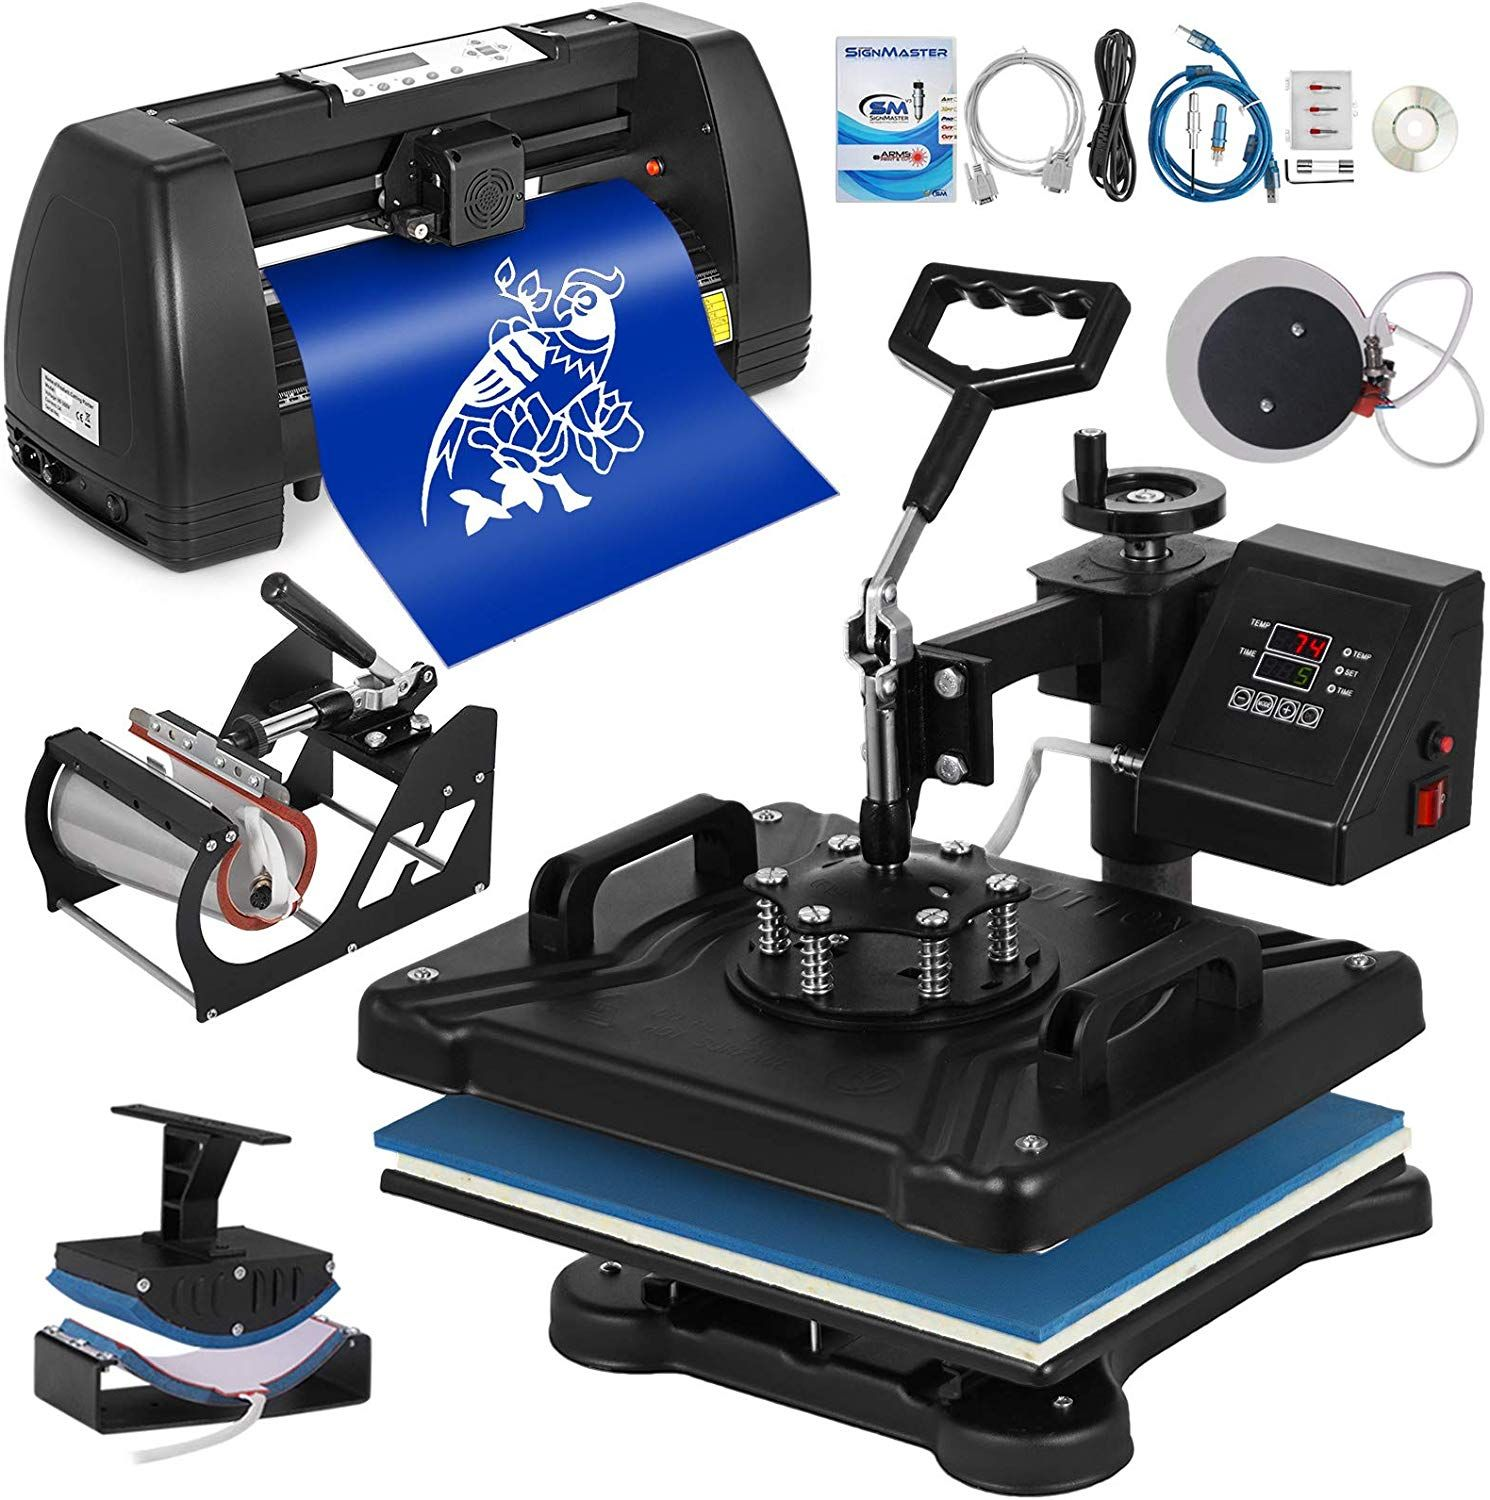 Best commercial vinyl cutter 2020 usa fashion house